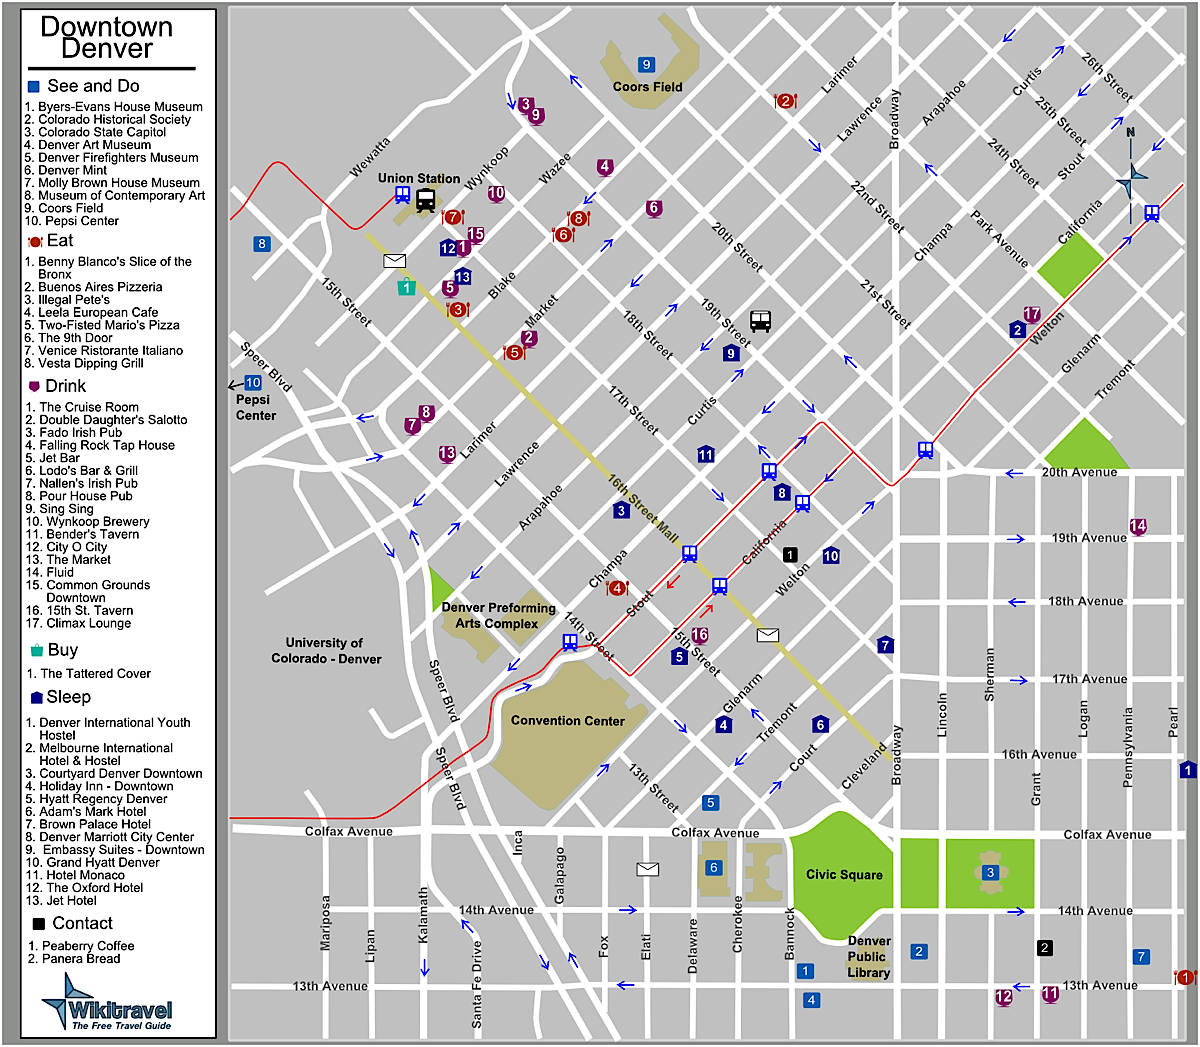 Downtown Denver Colorado Tourist Map Denver CO mappery – Tourist Map Of Colorado